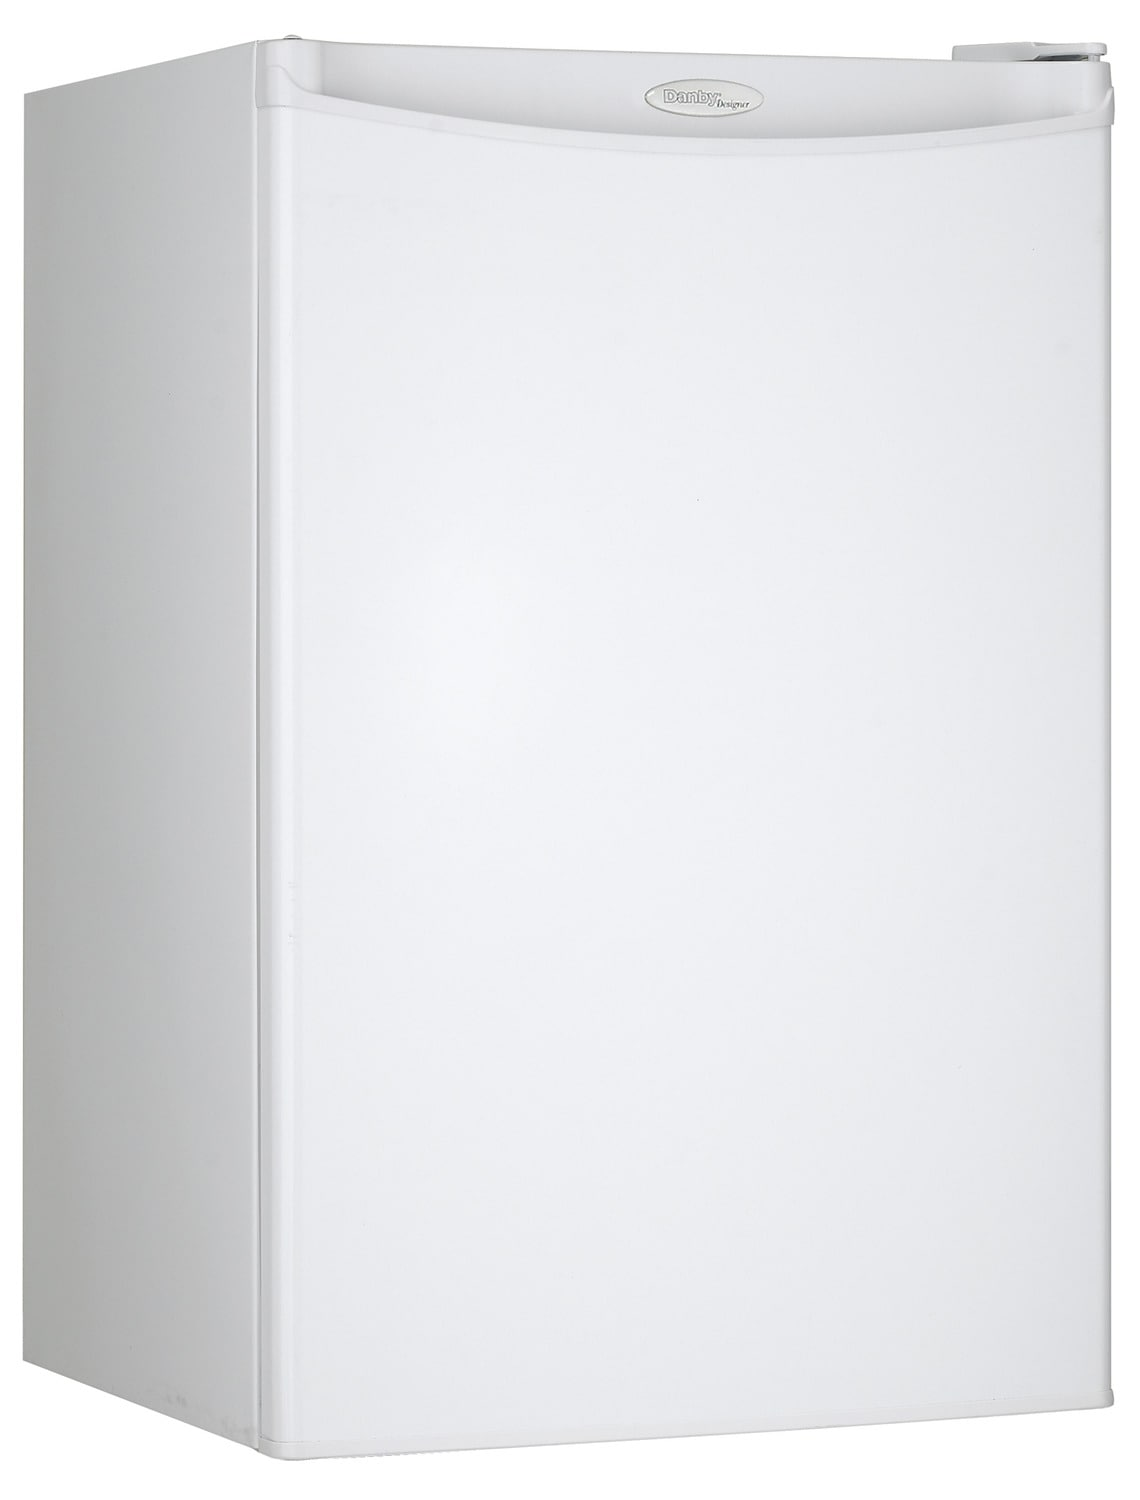 Refrigerators and Freezers - Danby White Compact Refrigerator (4.4 Cu. Ft.) - DCR044A2WDD